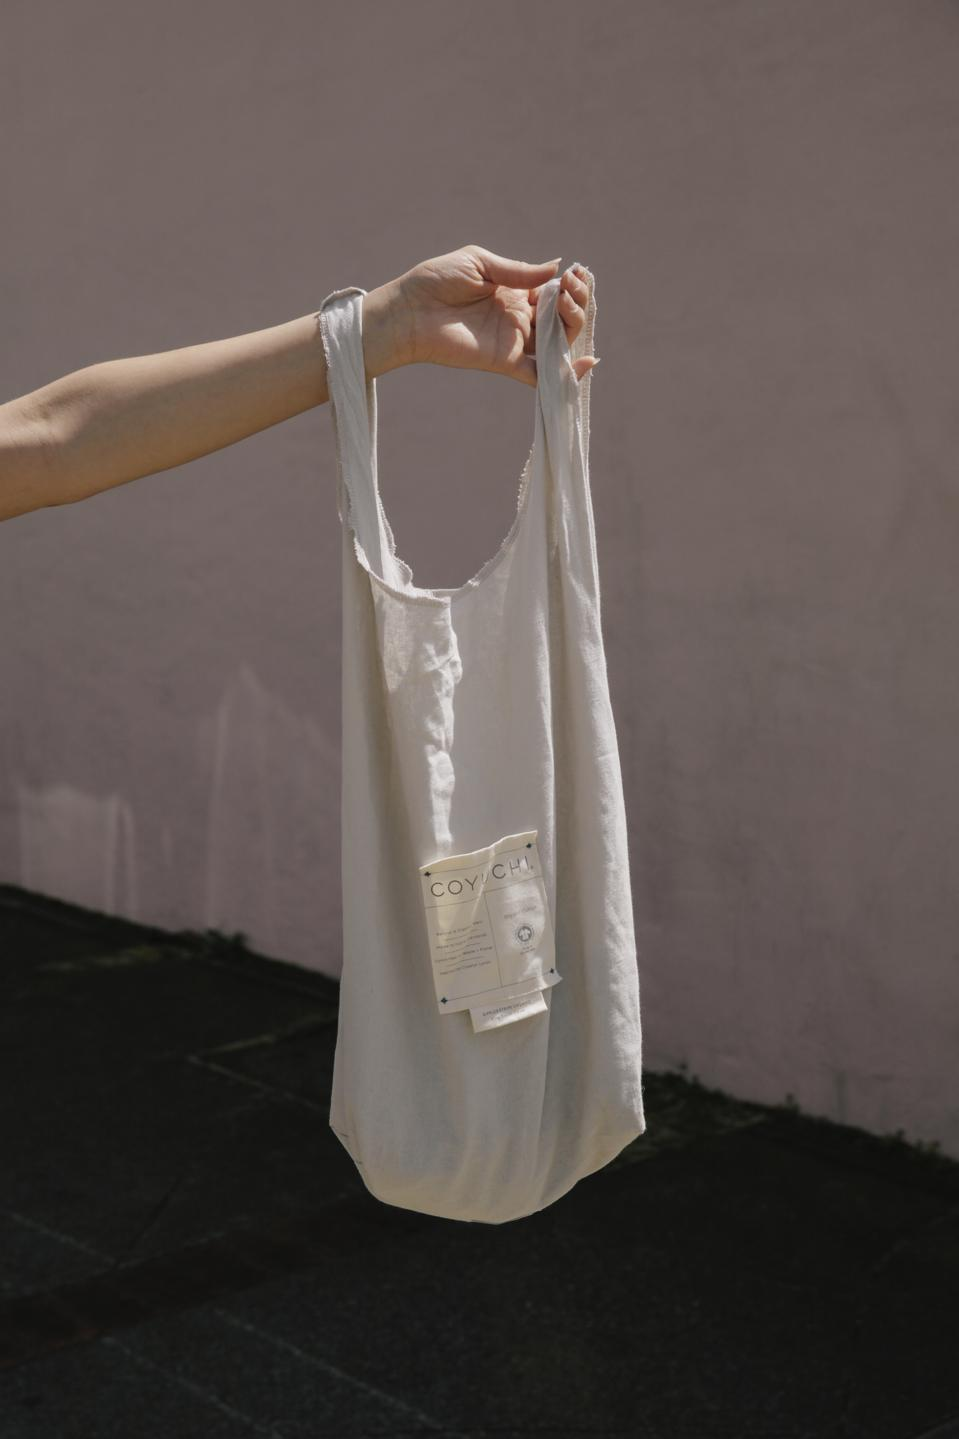 A white organic cotton bag with Coyuchi on it.